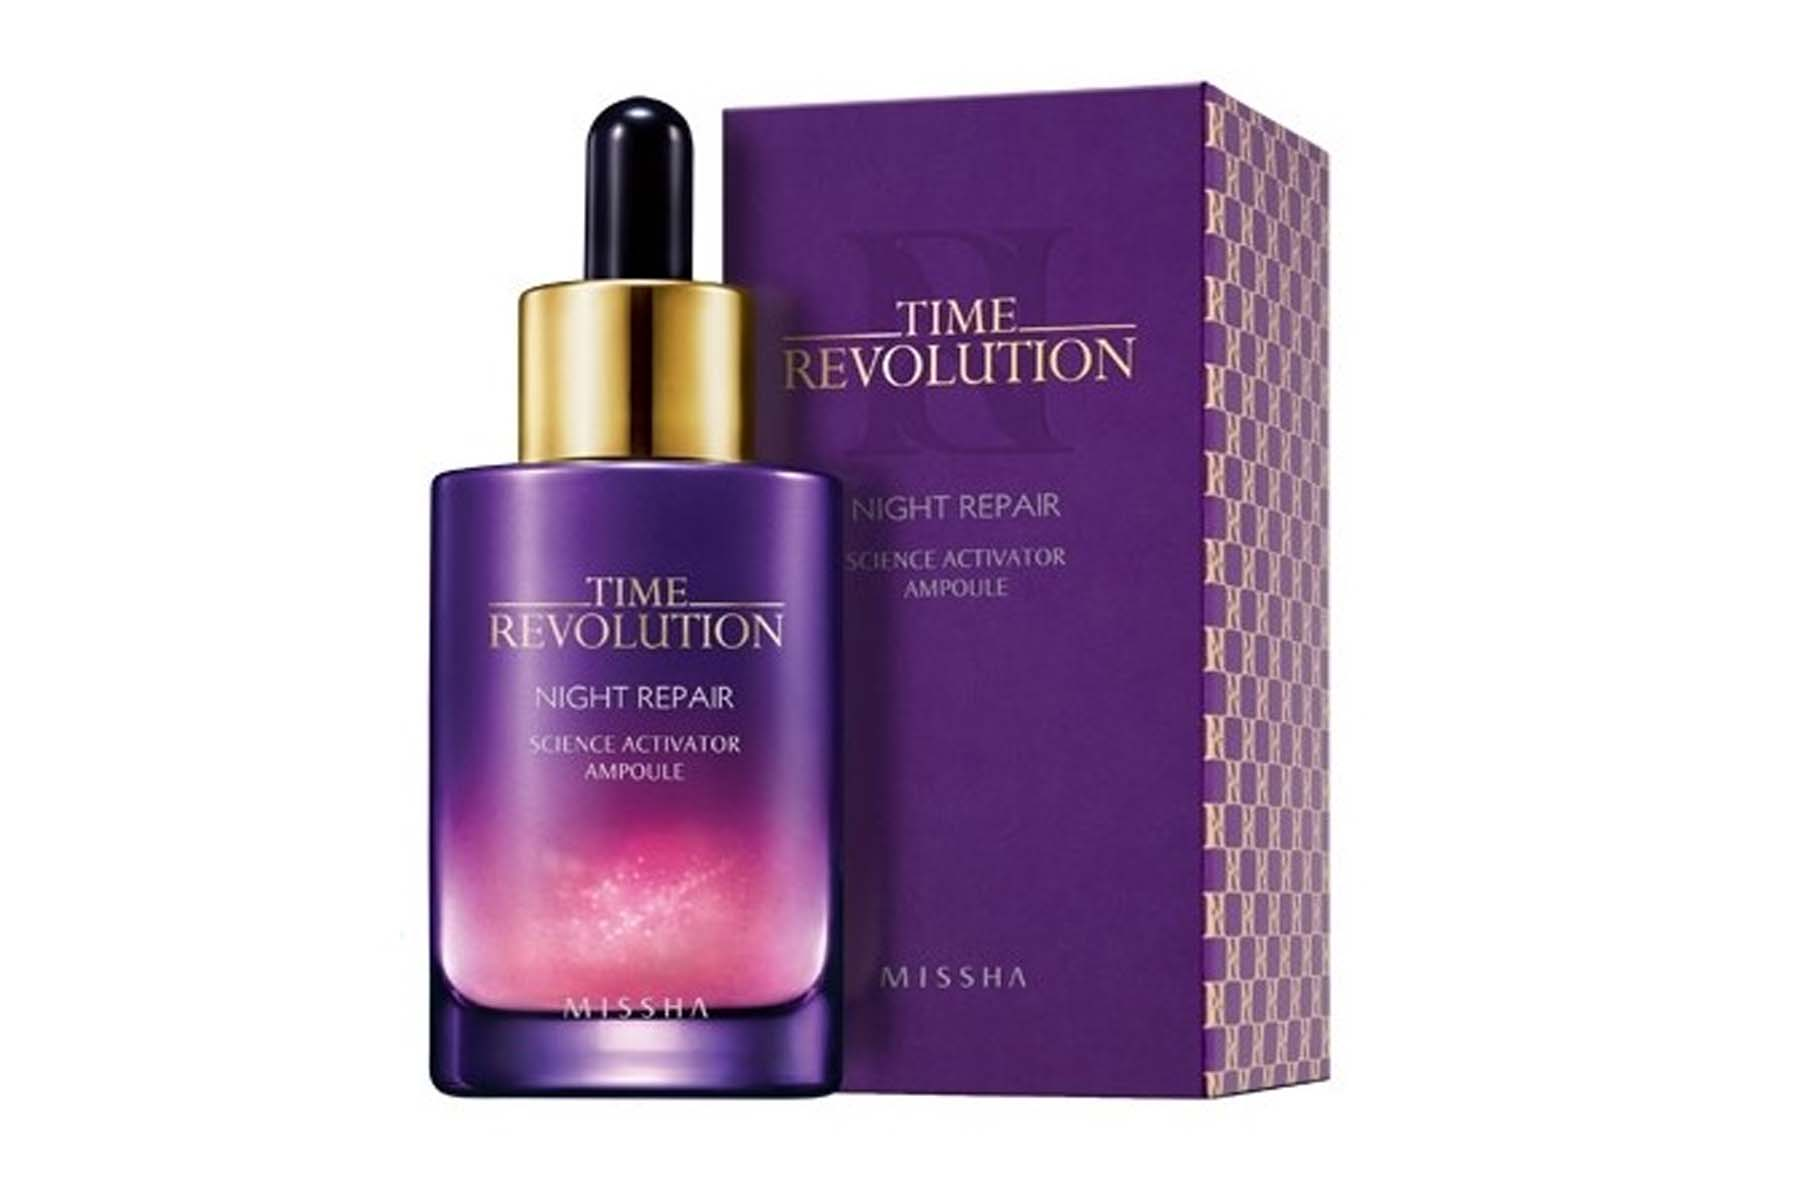 Missha Time Revolution Science Activator Ampoule (Photo: Missha)